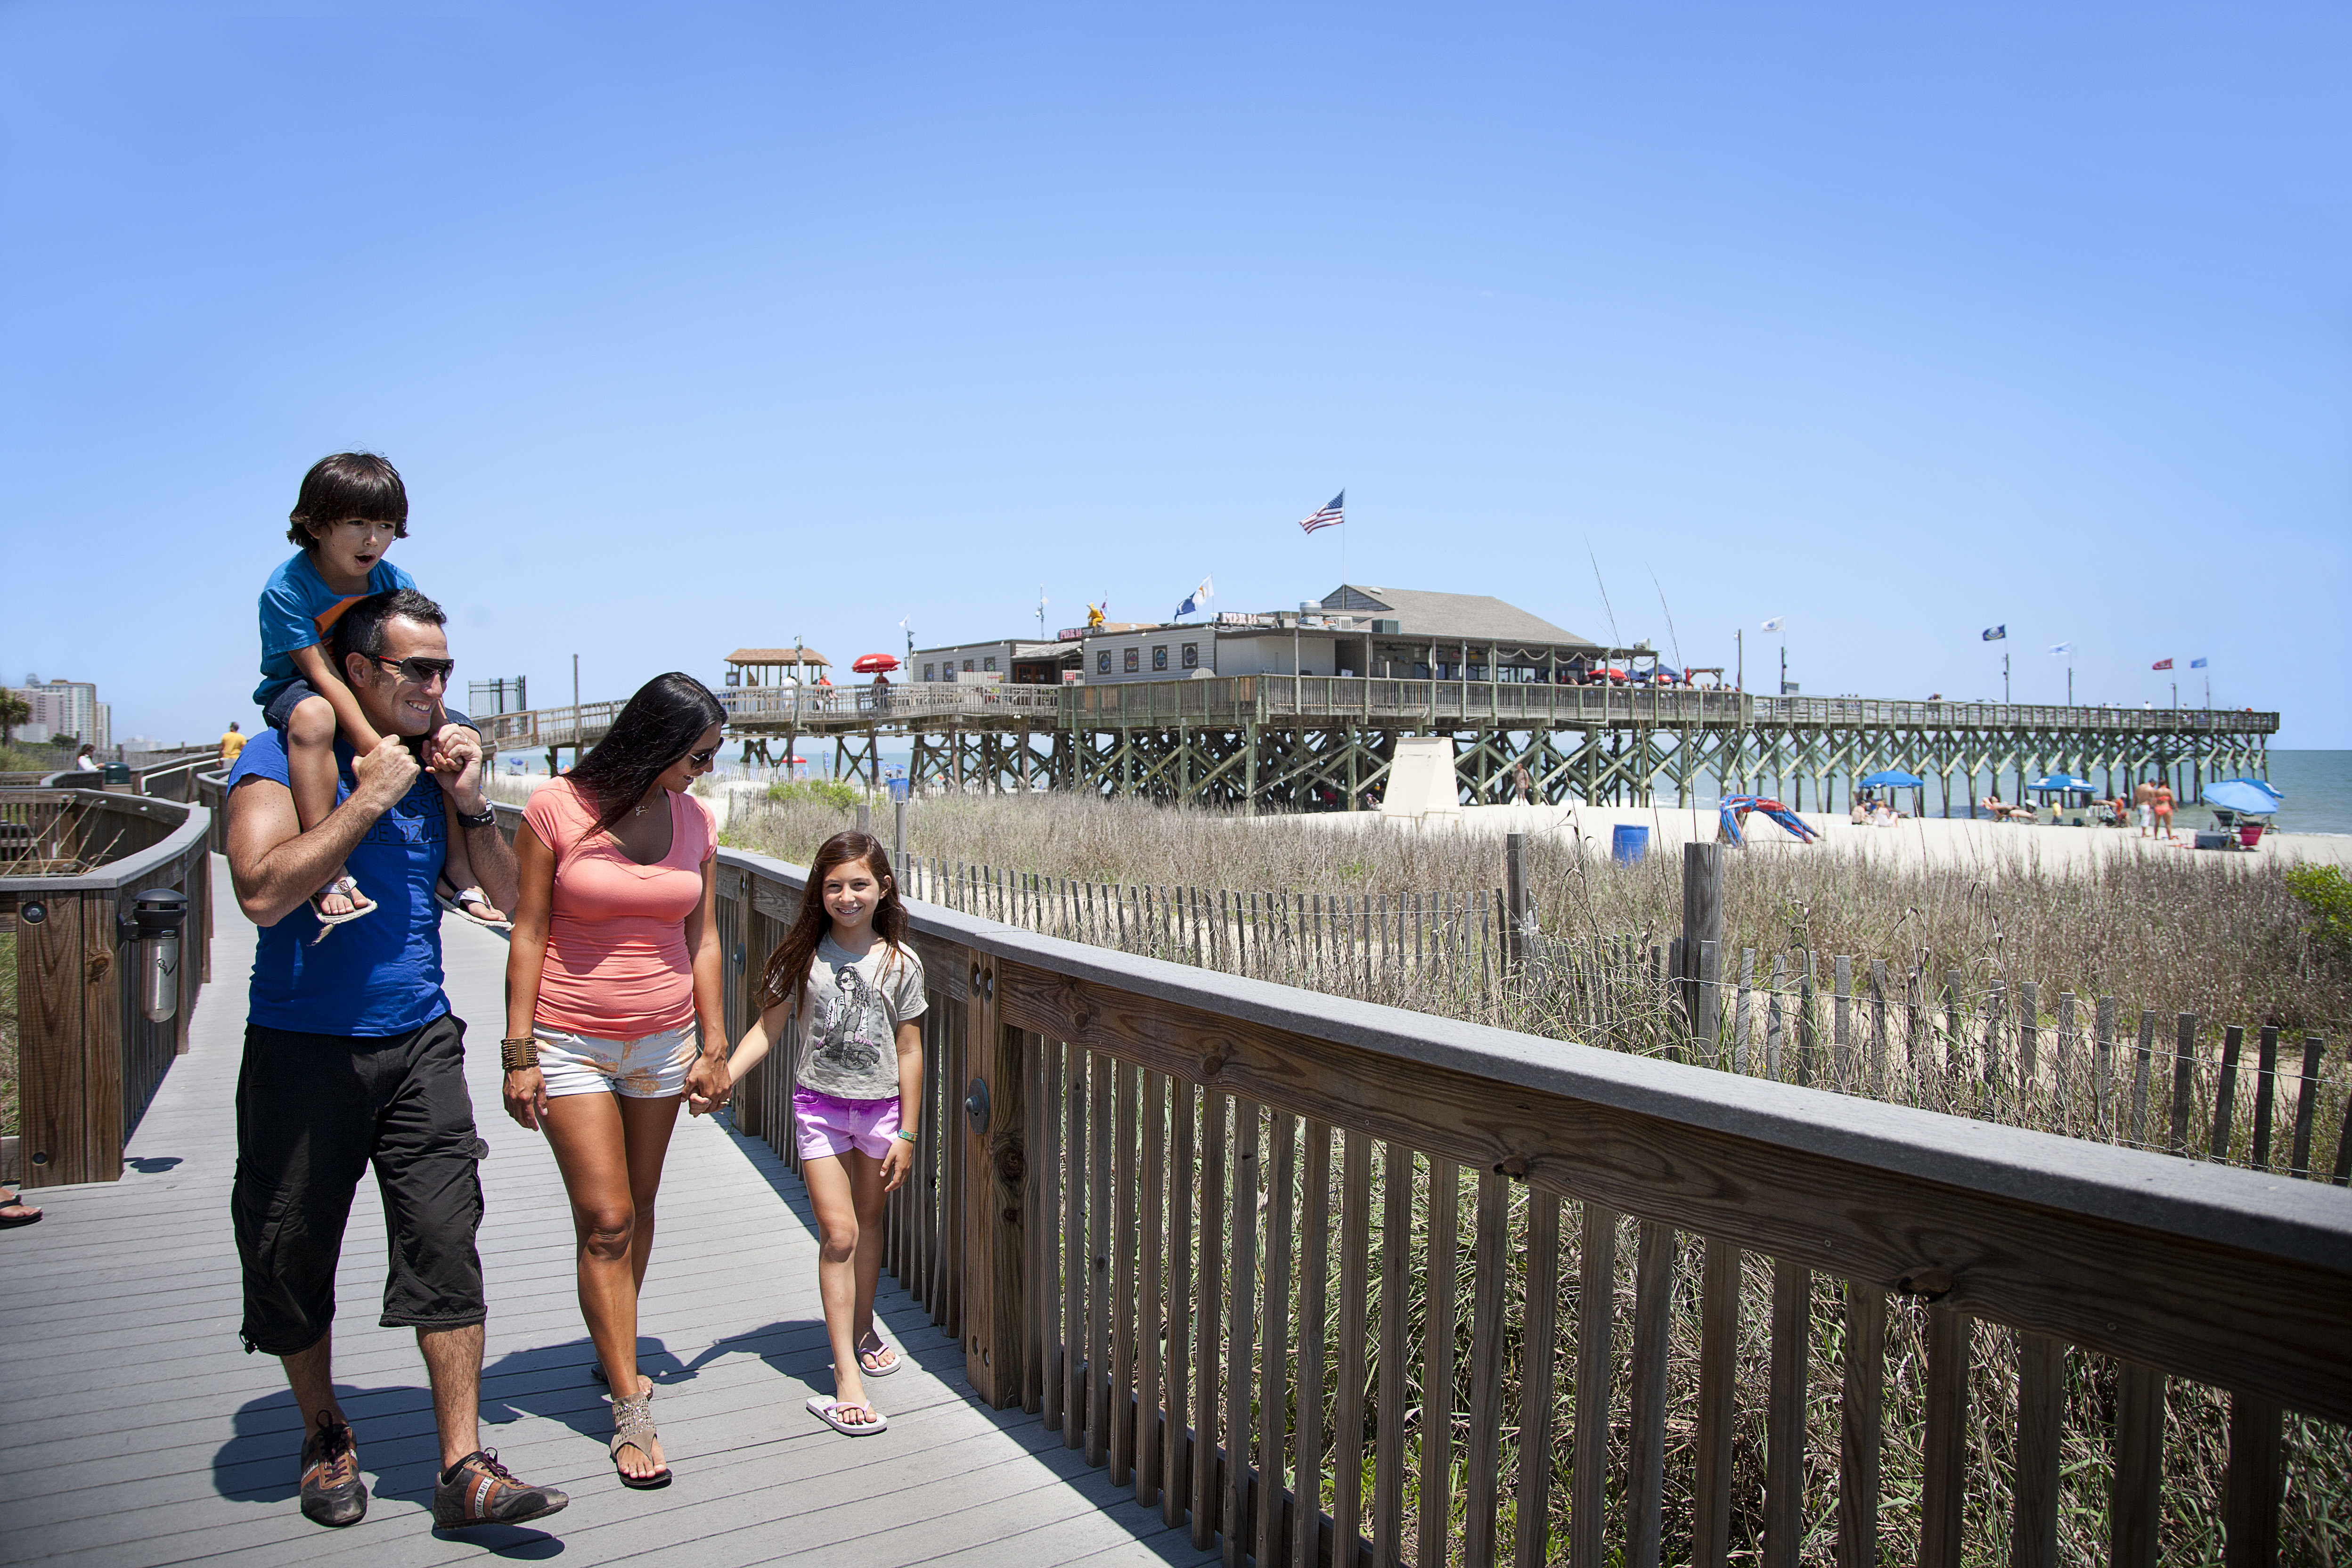 Family walking on the boardwalk Myrtle Beach